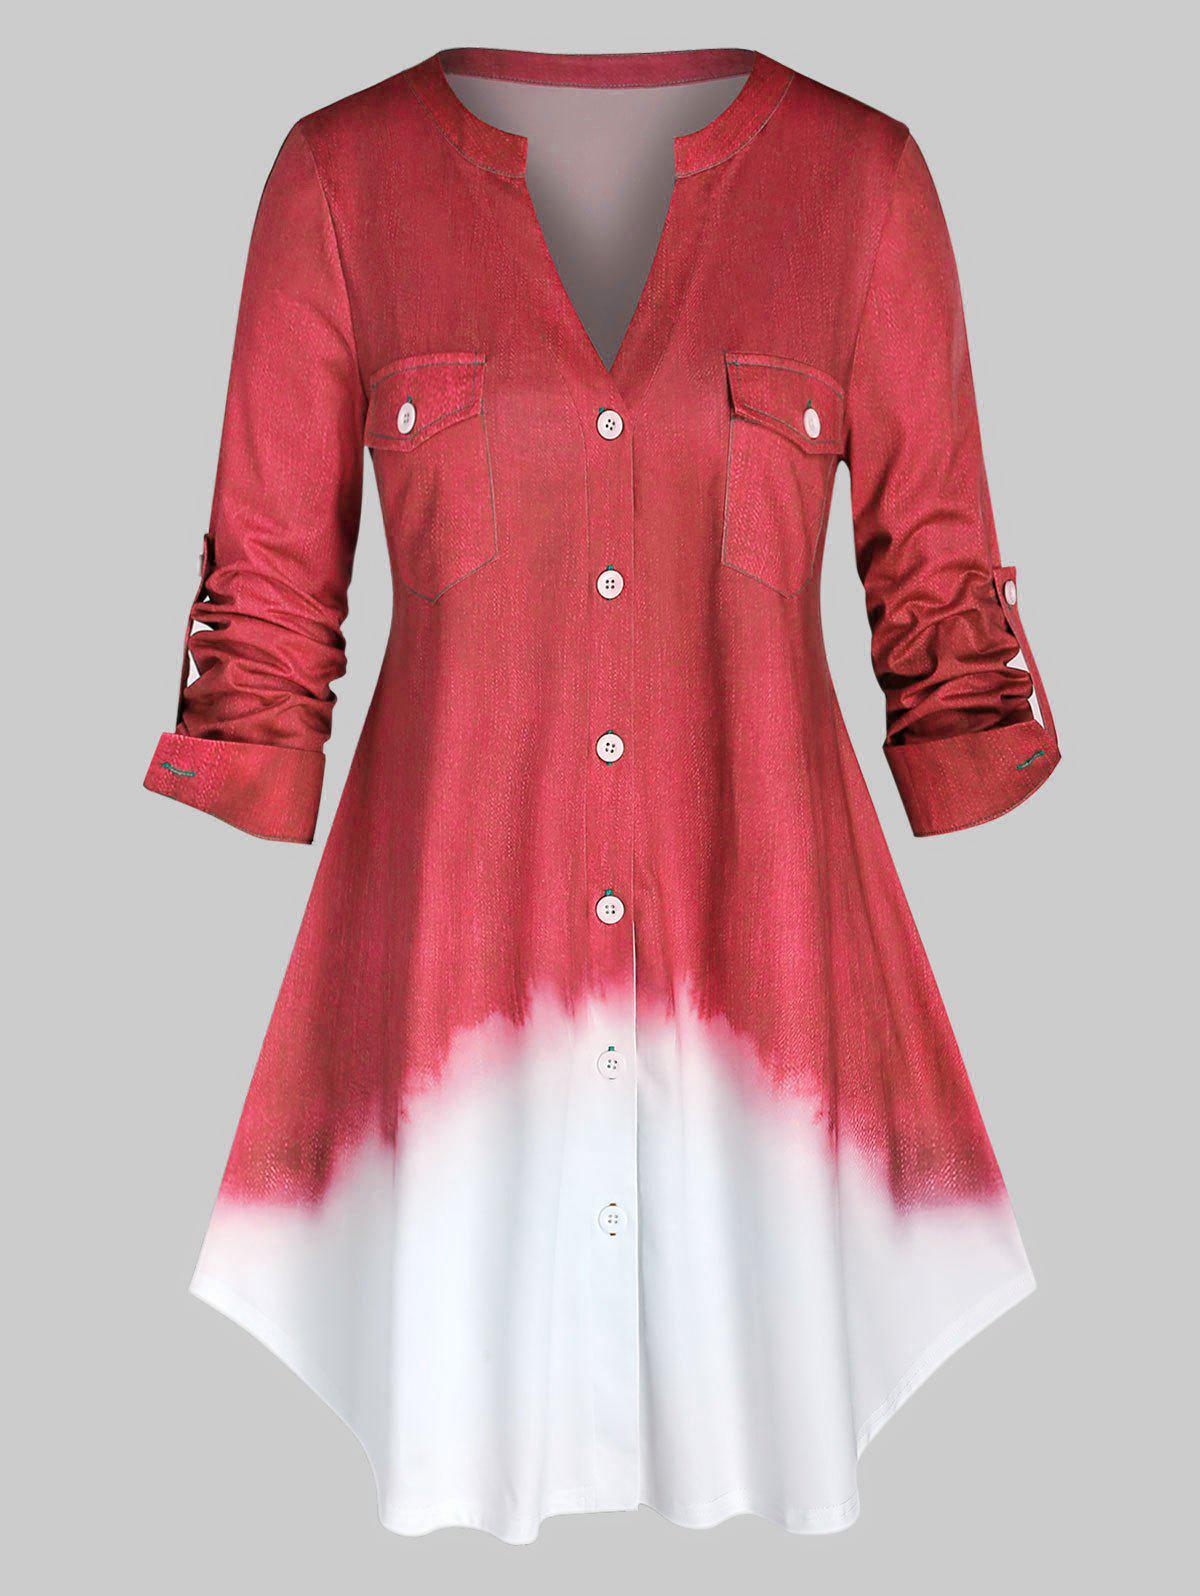 Plus Size Roll Up Sleeve Ombre Color Shirt - VALENTINE RED 5X